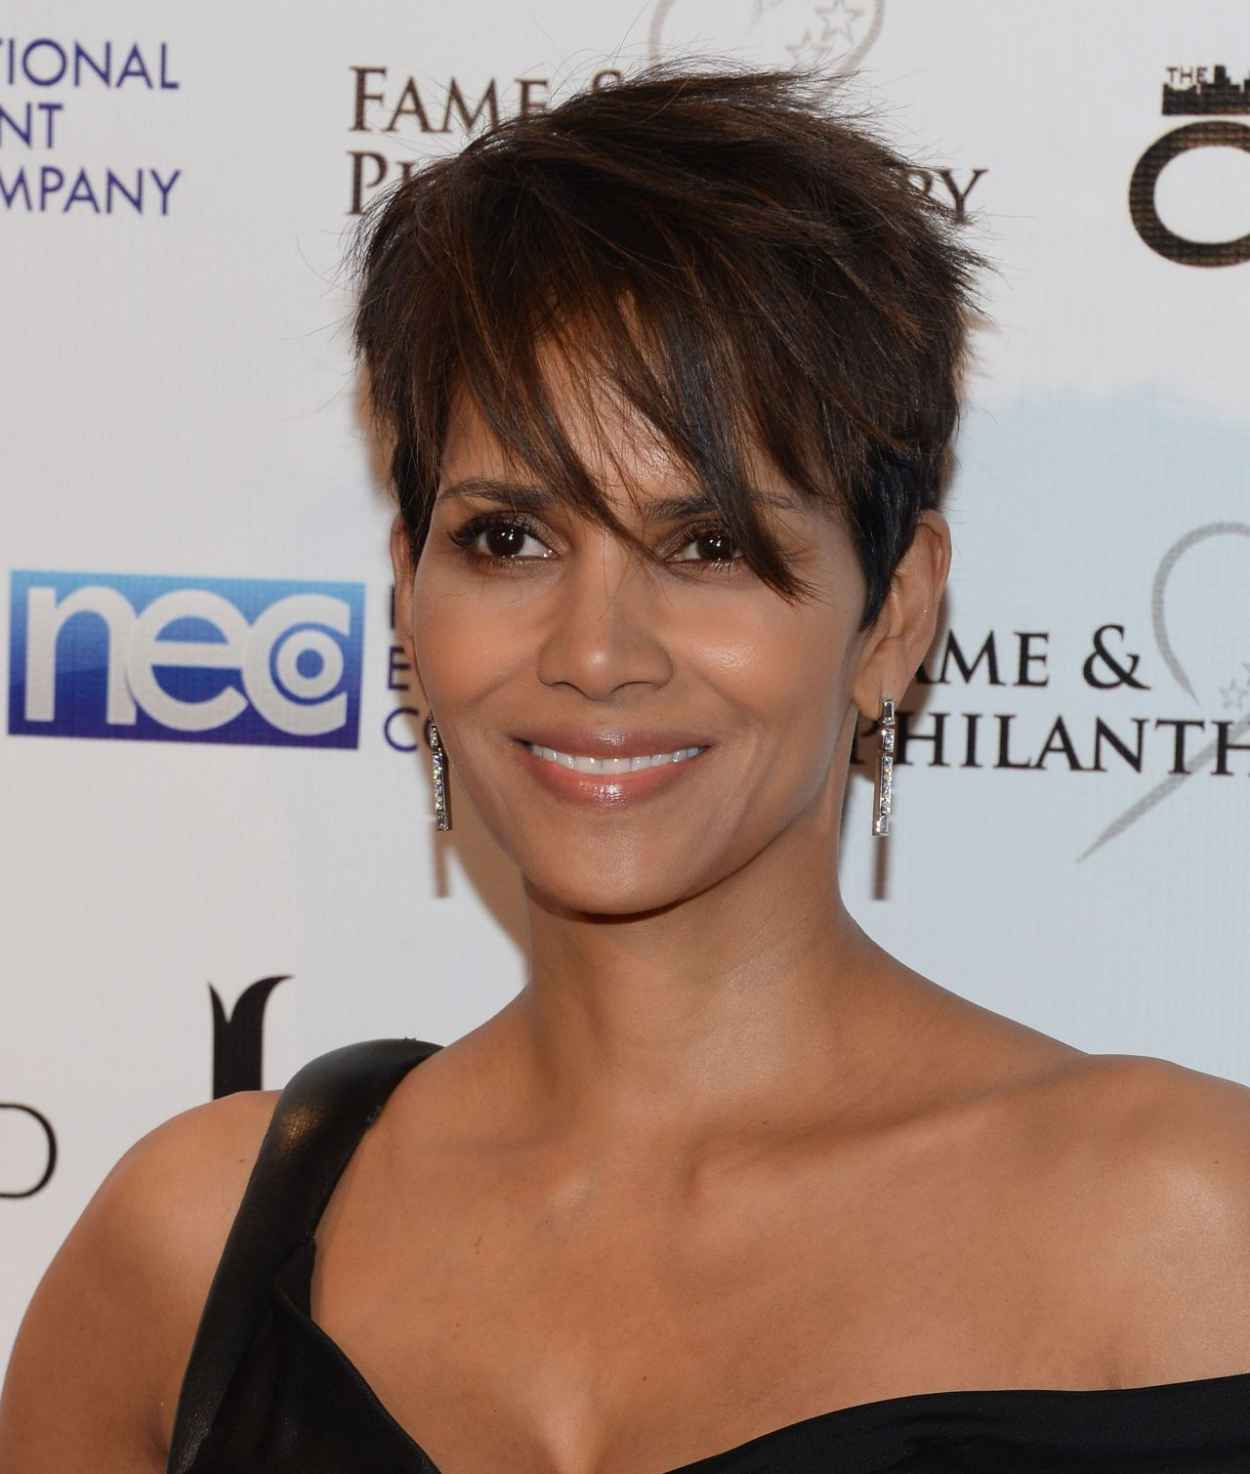 Halle Berry - Fame and Philanthropy Post-Oscar Party 2015-1